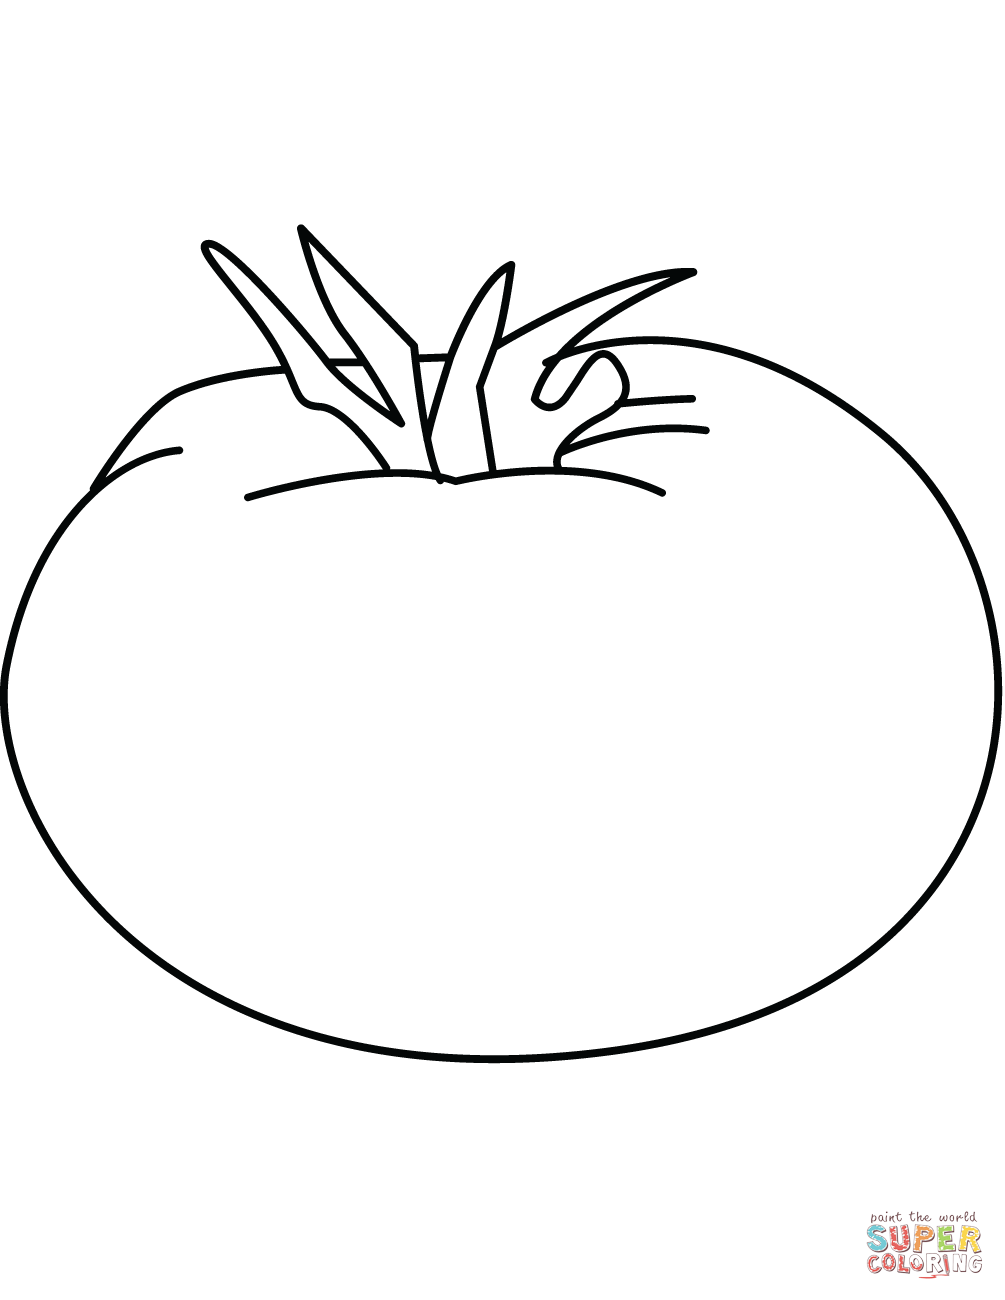 coloring tomato template tomato simple vegetables easy coloring pages for toddlers tomato template coloring